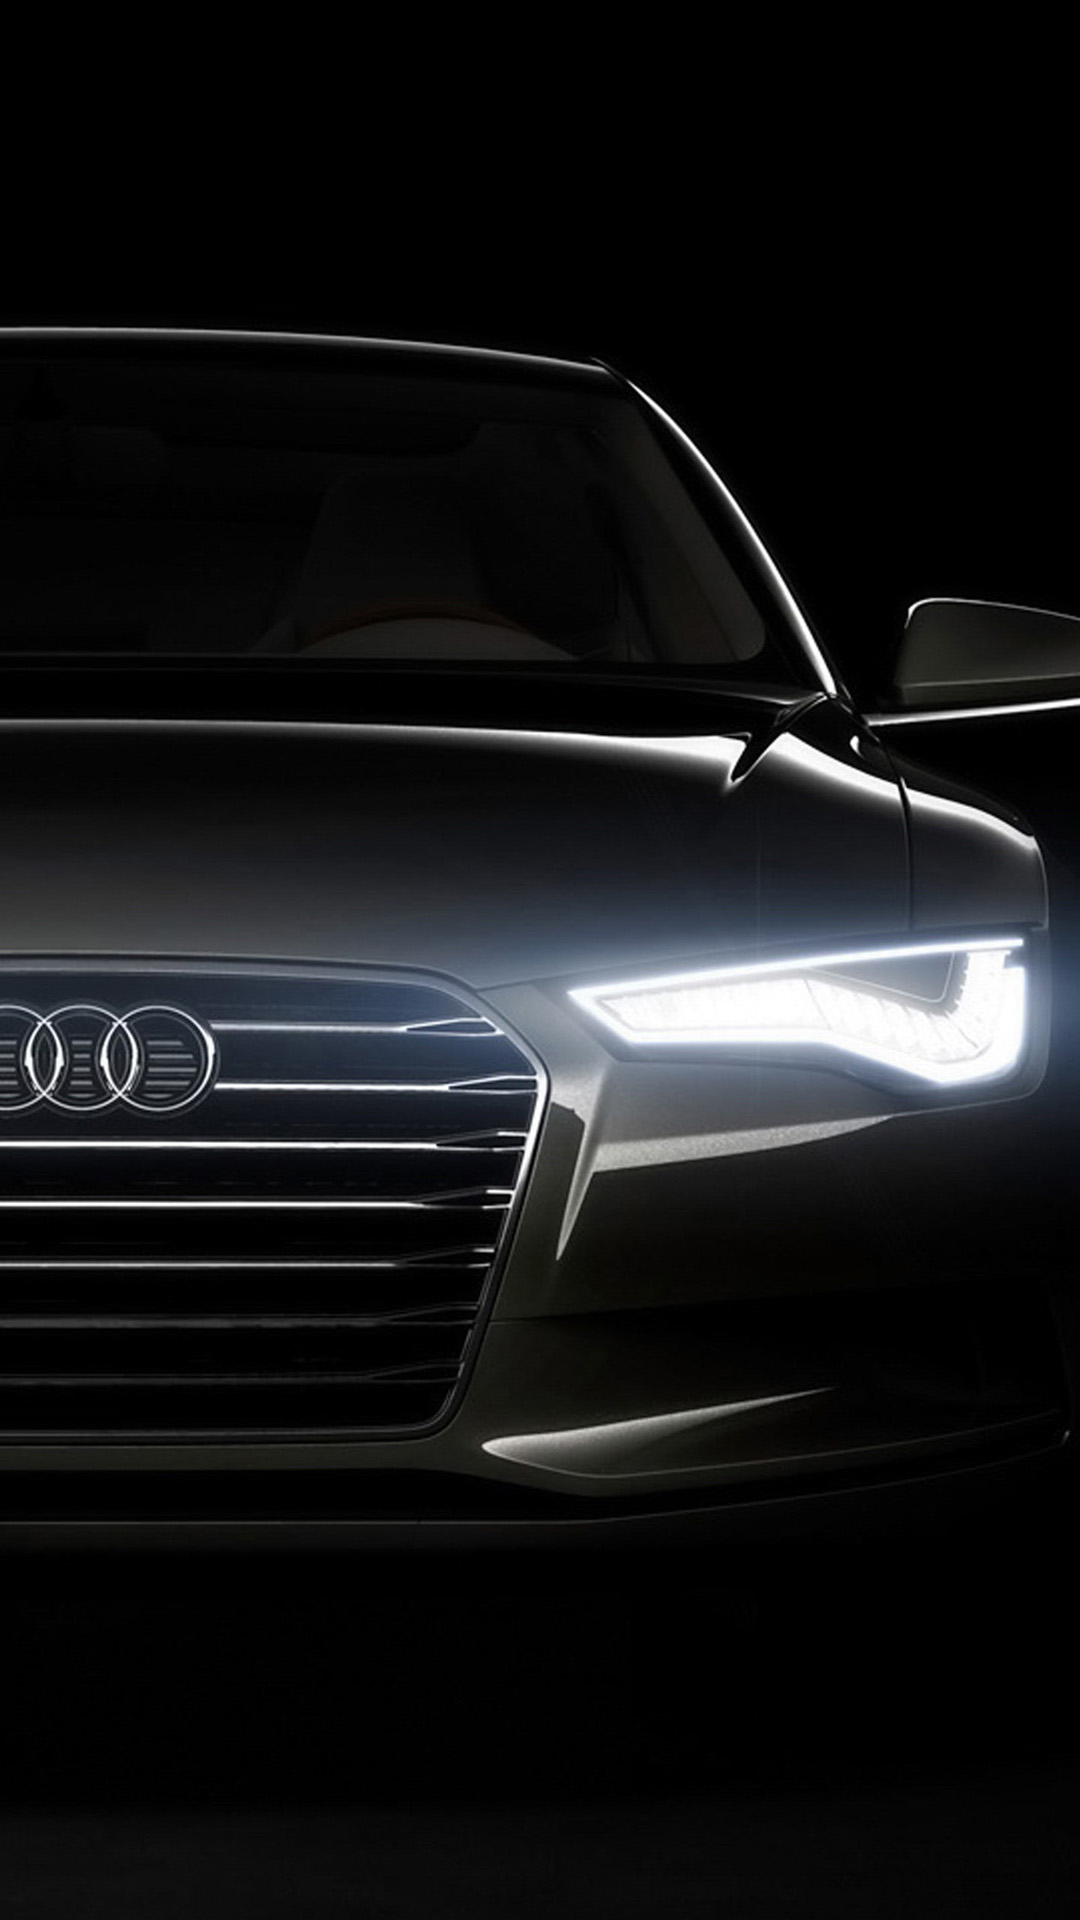 Audi a7 sportback 3 HD Wallpaper iPhone 6 plus wallpapersmobilenet